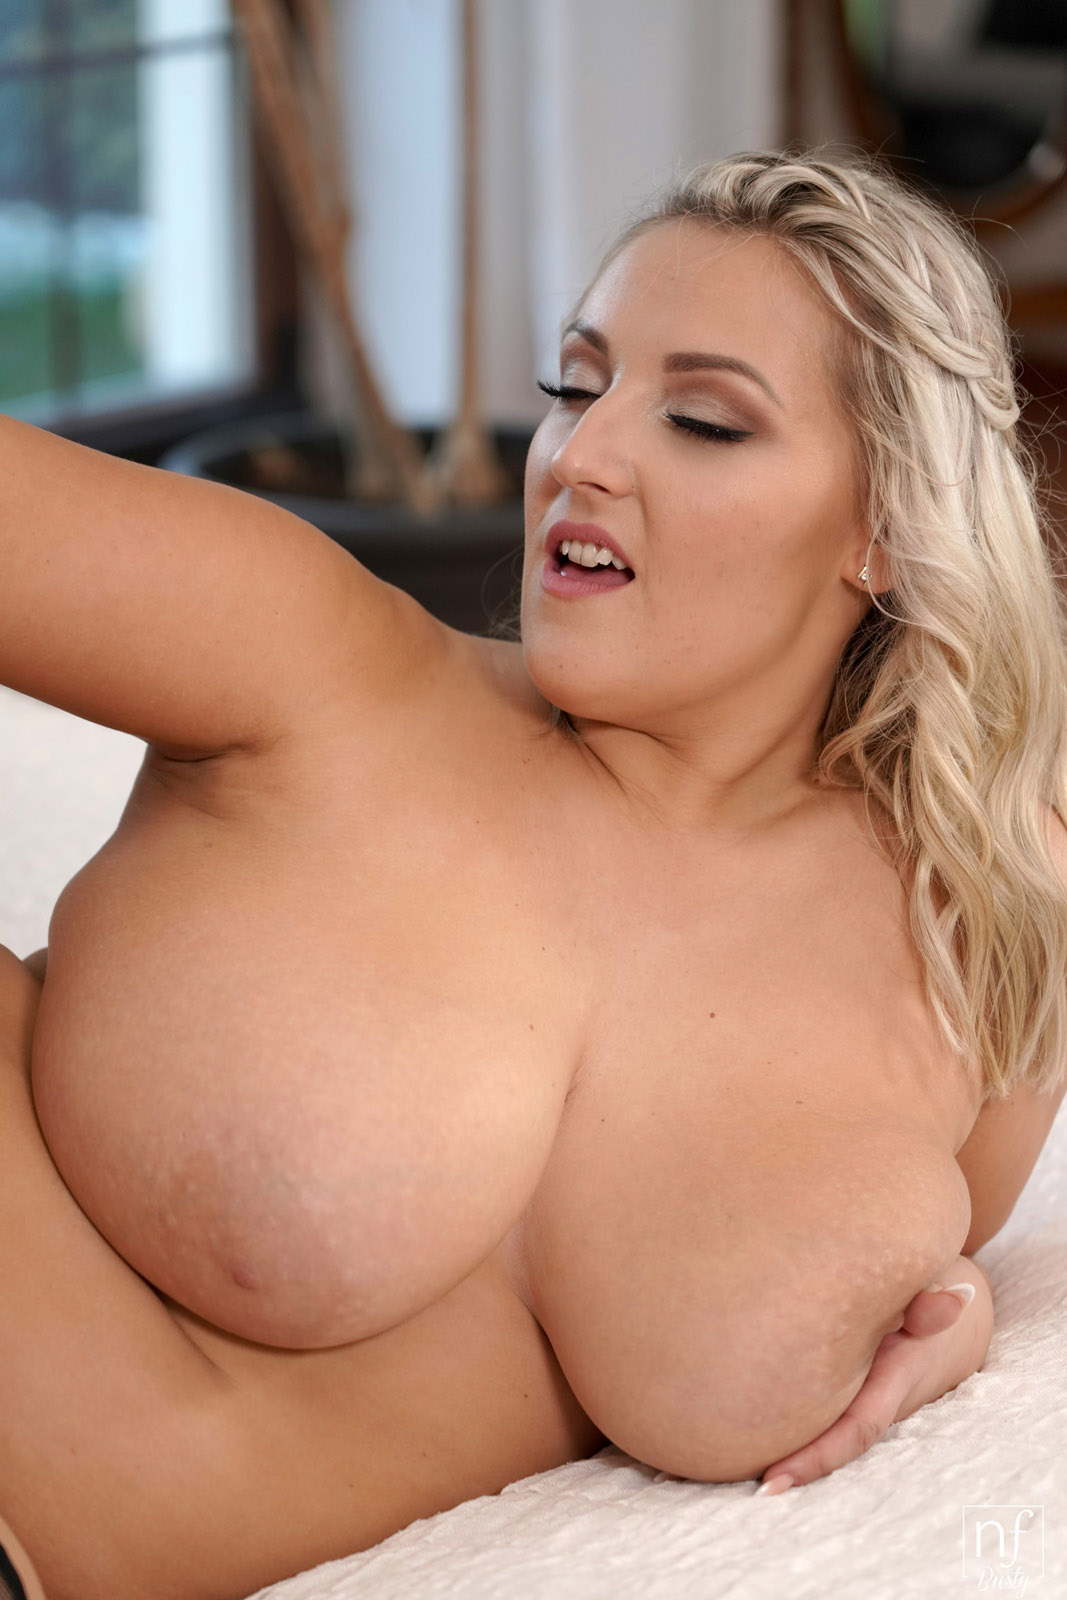 Sexy Striptease Hd Big Tits